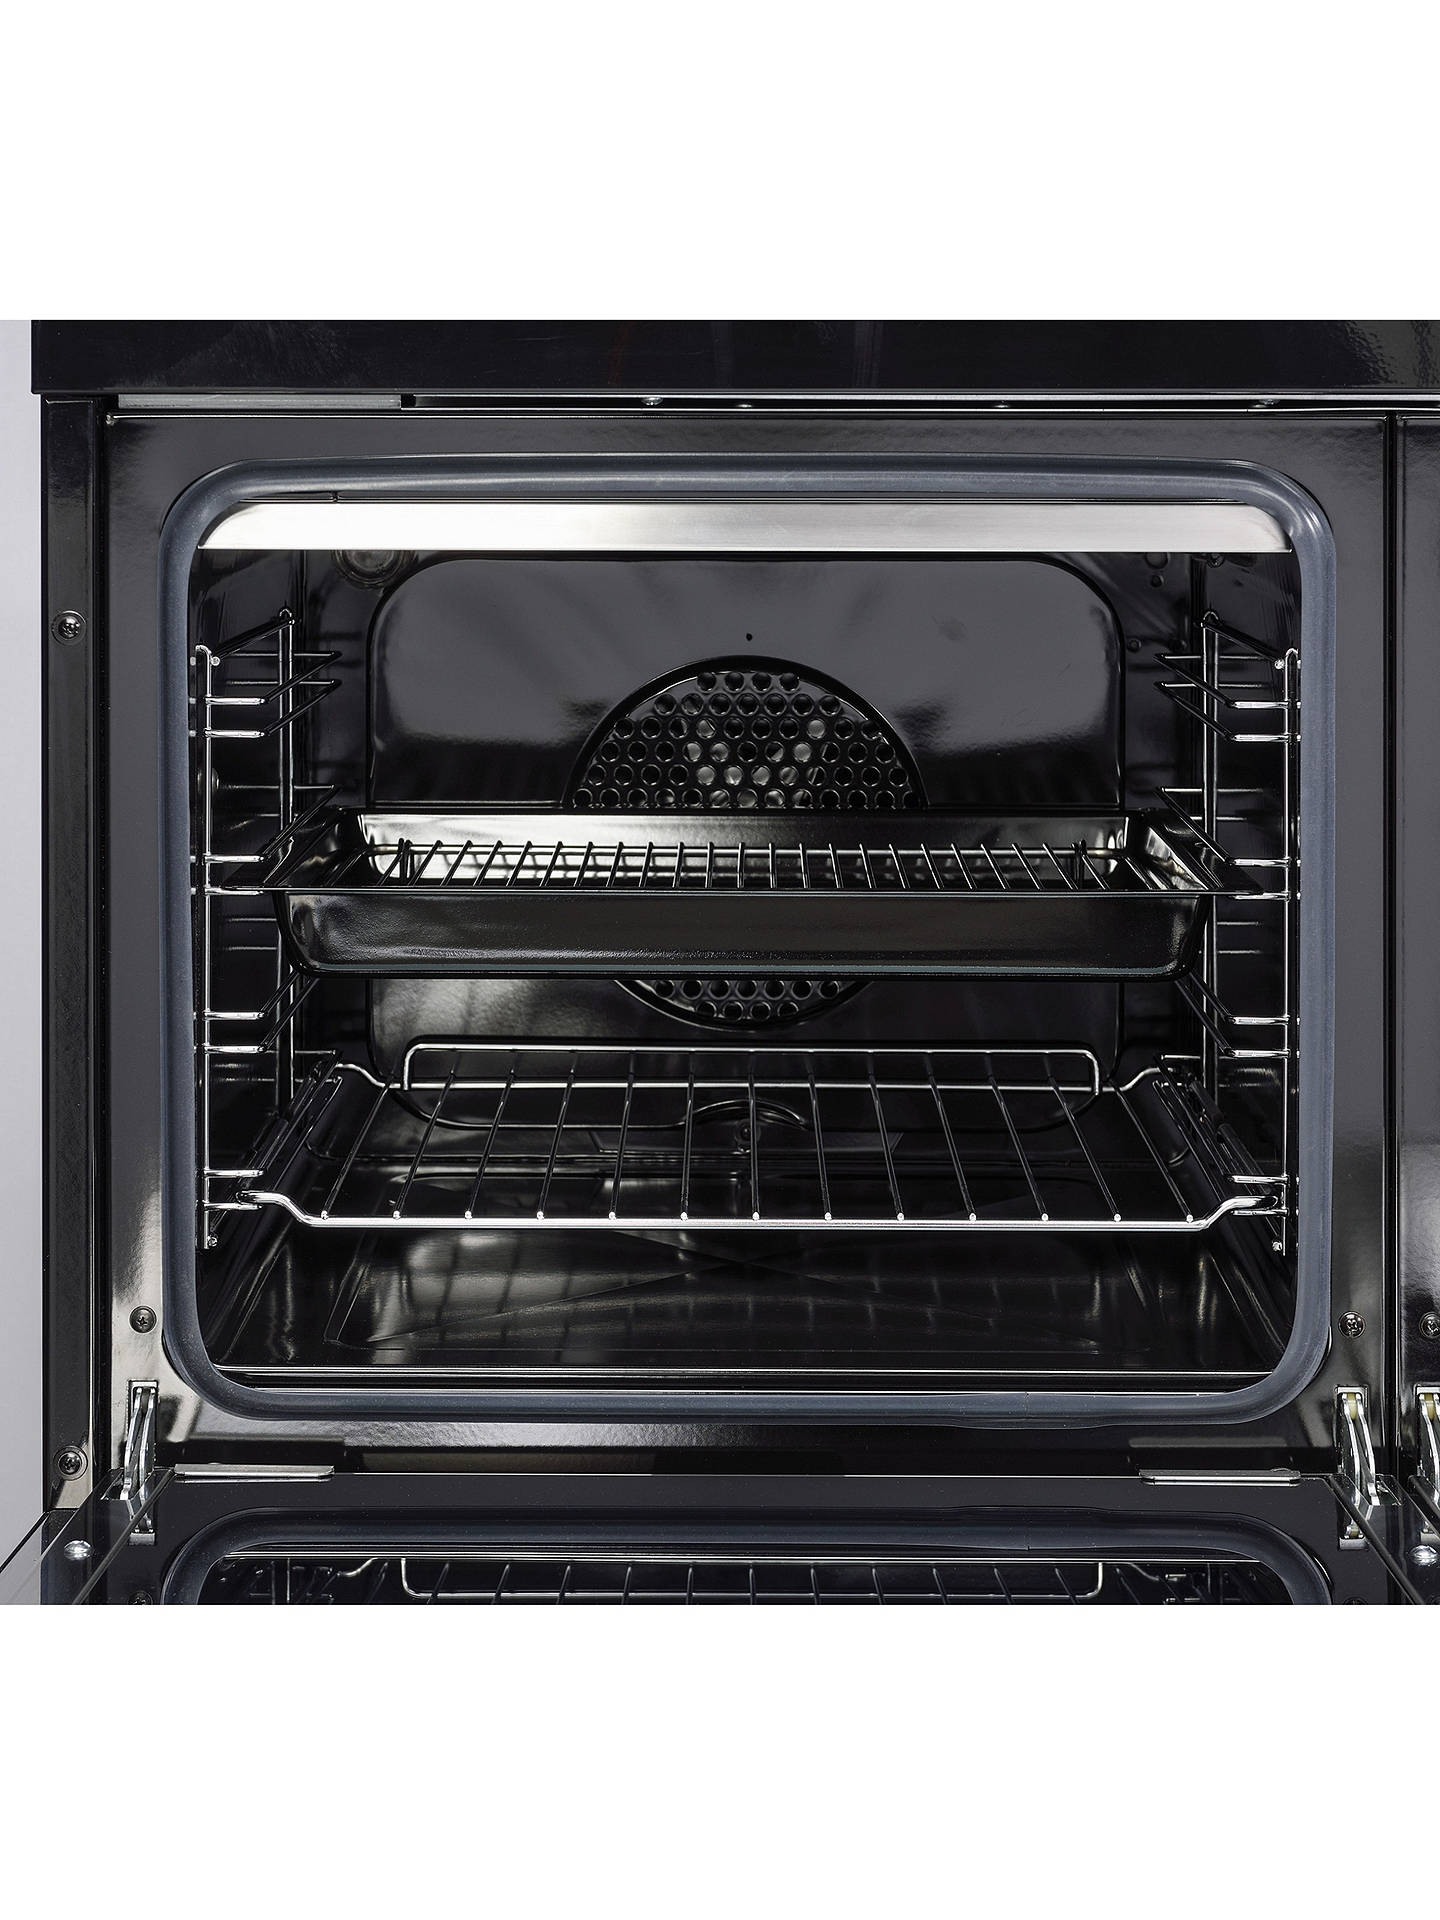 BuyBritannia RC-10TI-QL-K Q-Line Induction Hob Range Cooker, Black Online at johnlewis.com